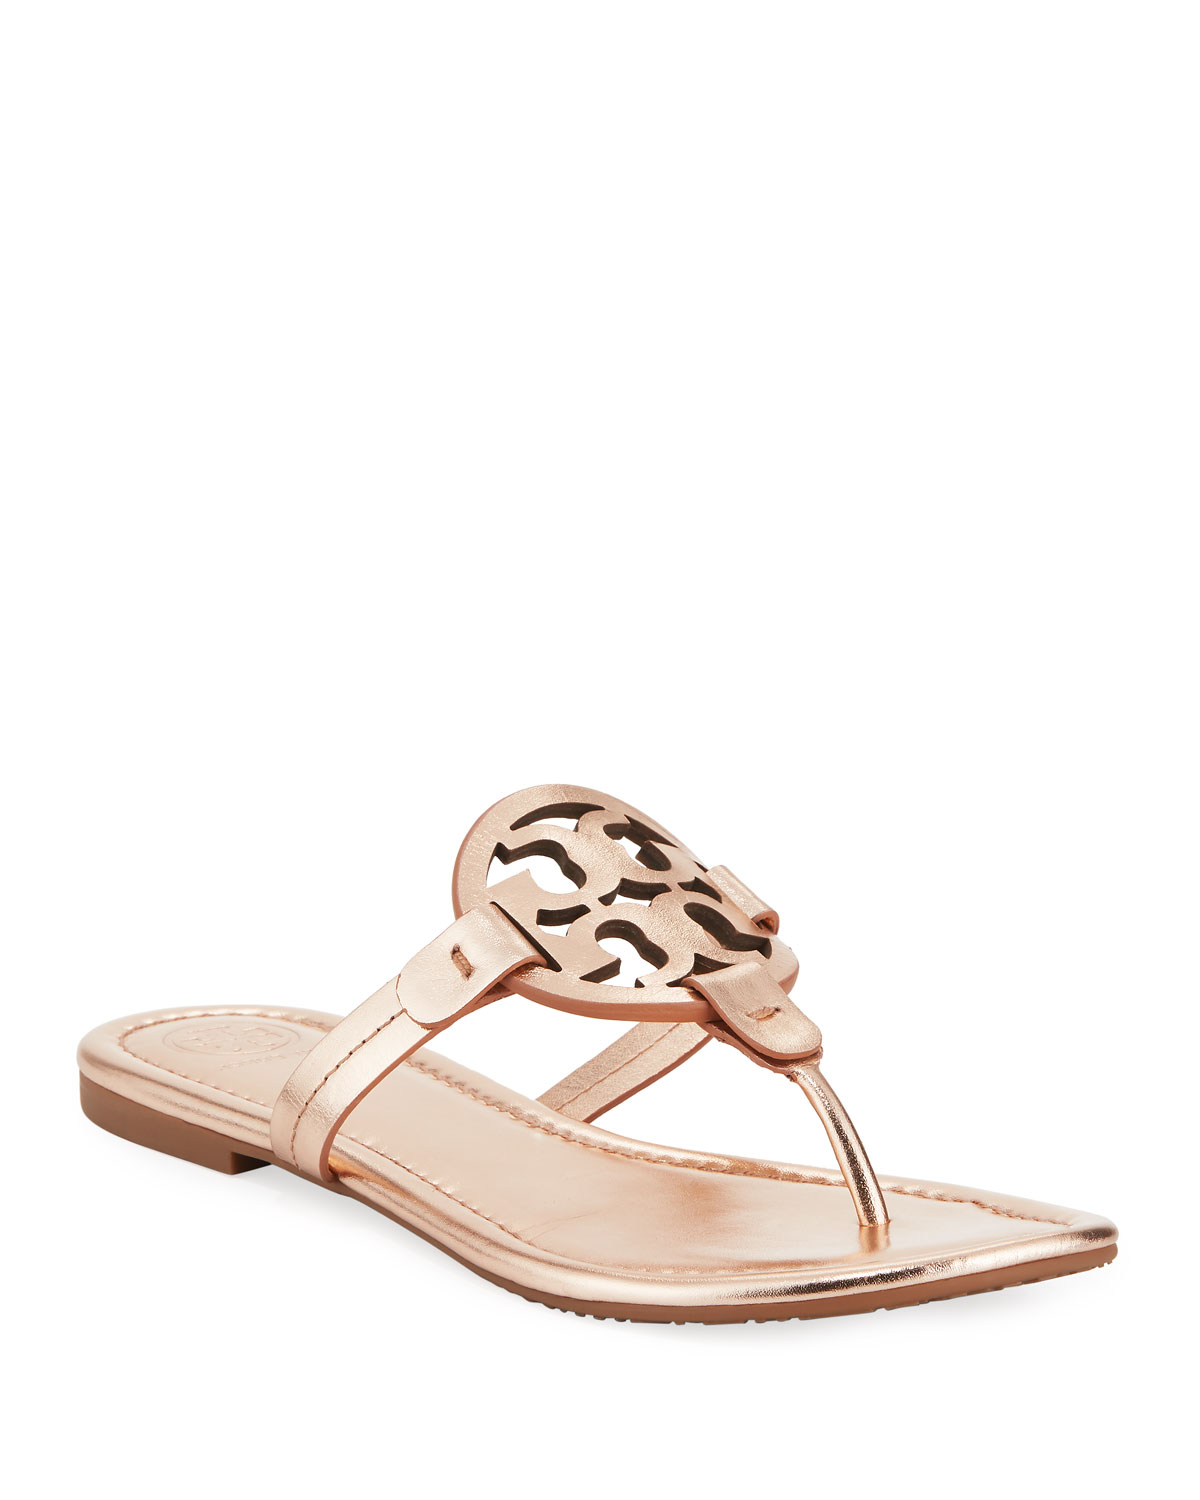 1317c823d9a Miller Medallion Metallic Leather Flat Slide Sandal